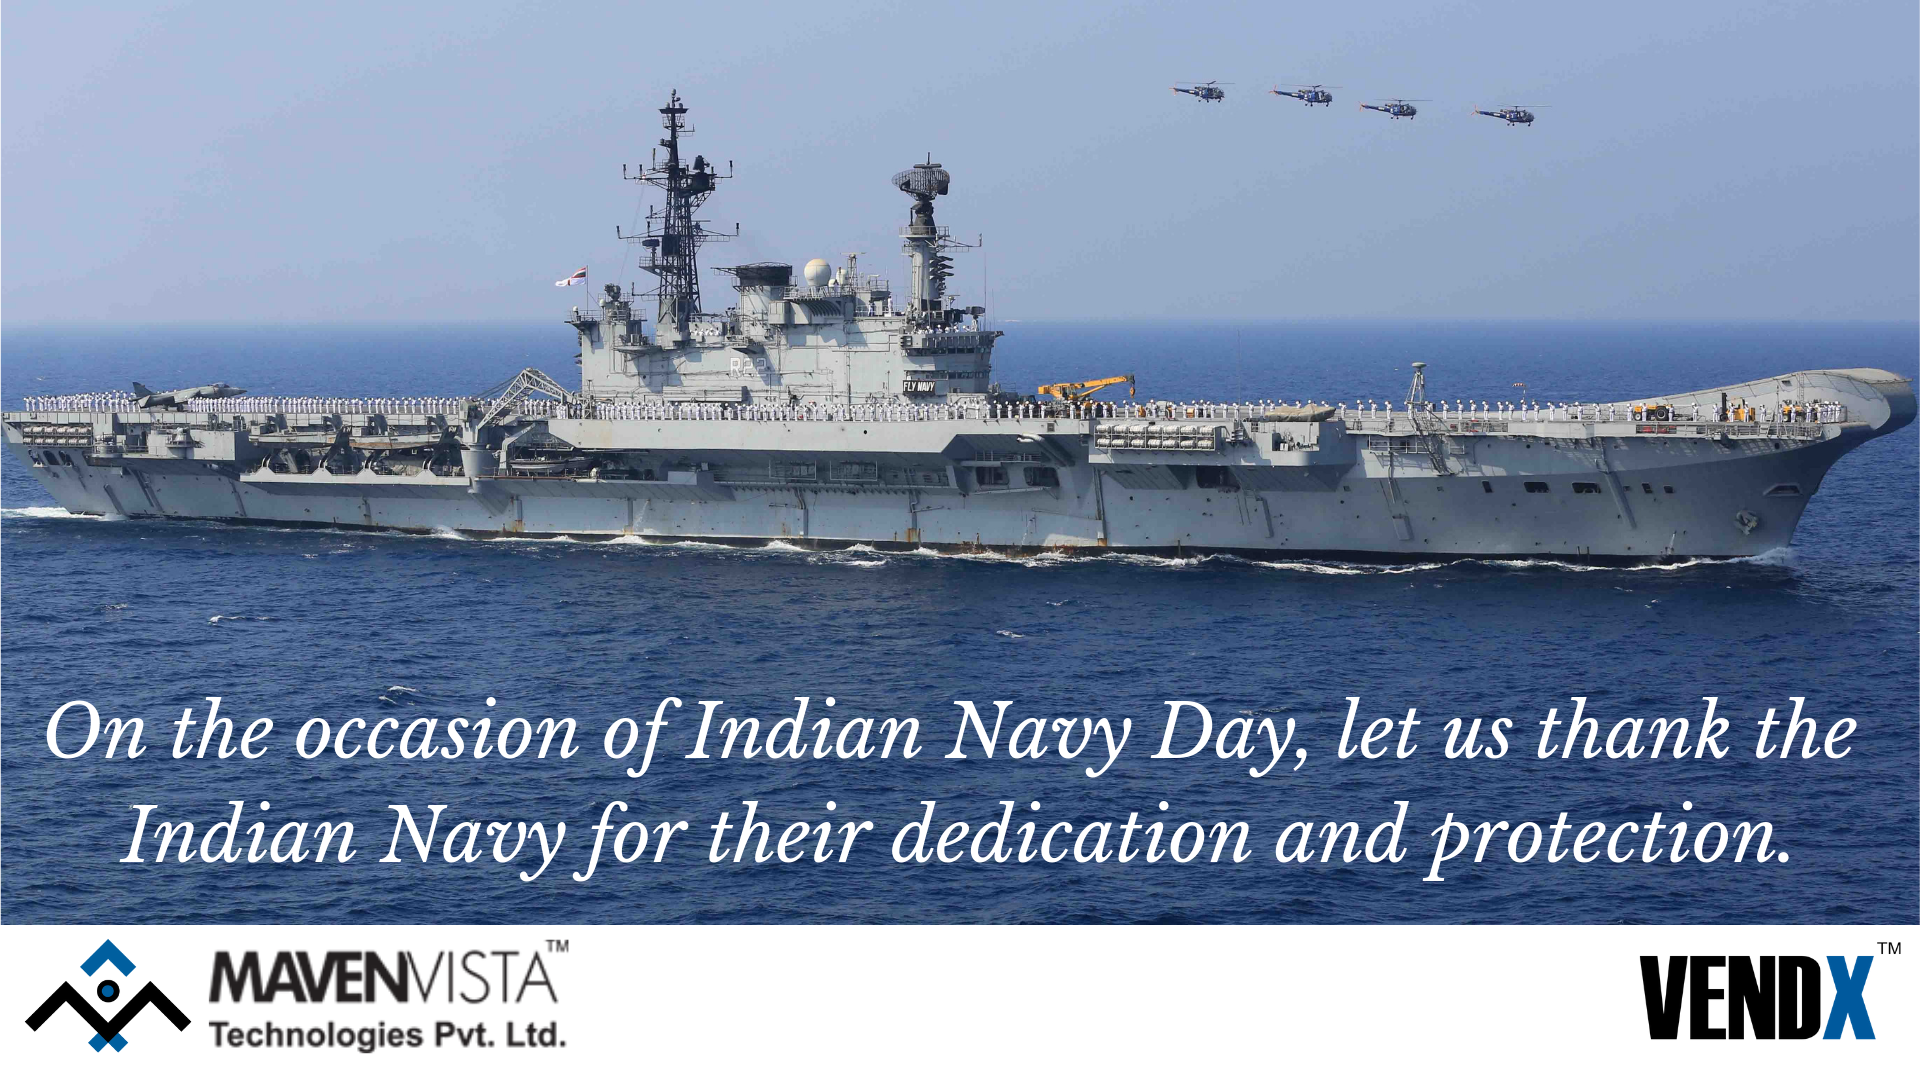 Greetings Of Navyday From Team Mavenvista Indiannavyday Is Observed To Commemorate Operationtrident A Courageous At Indian Navy Day Navy Day Indian Navy